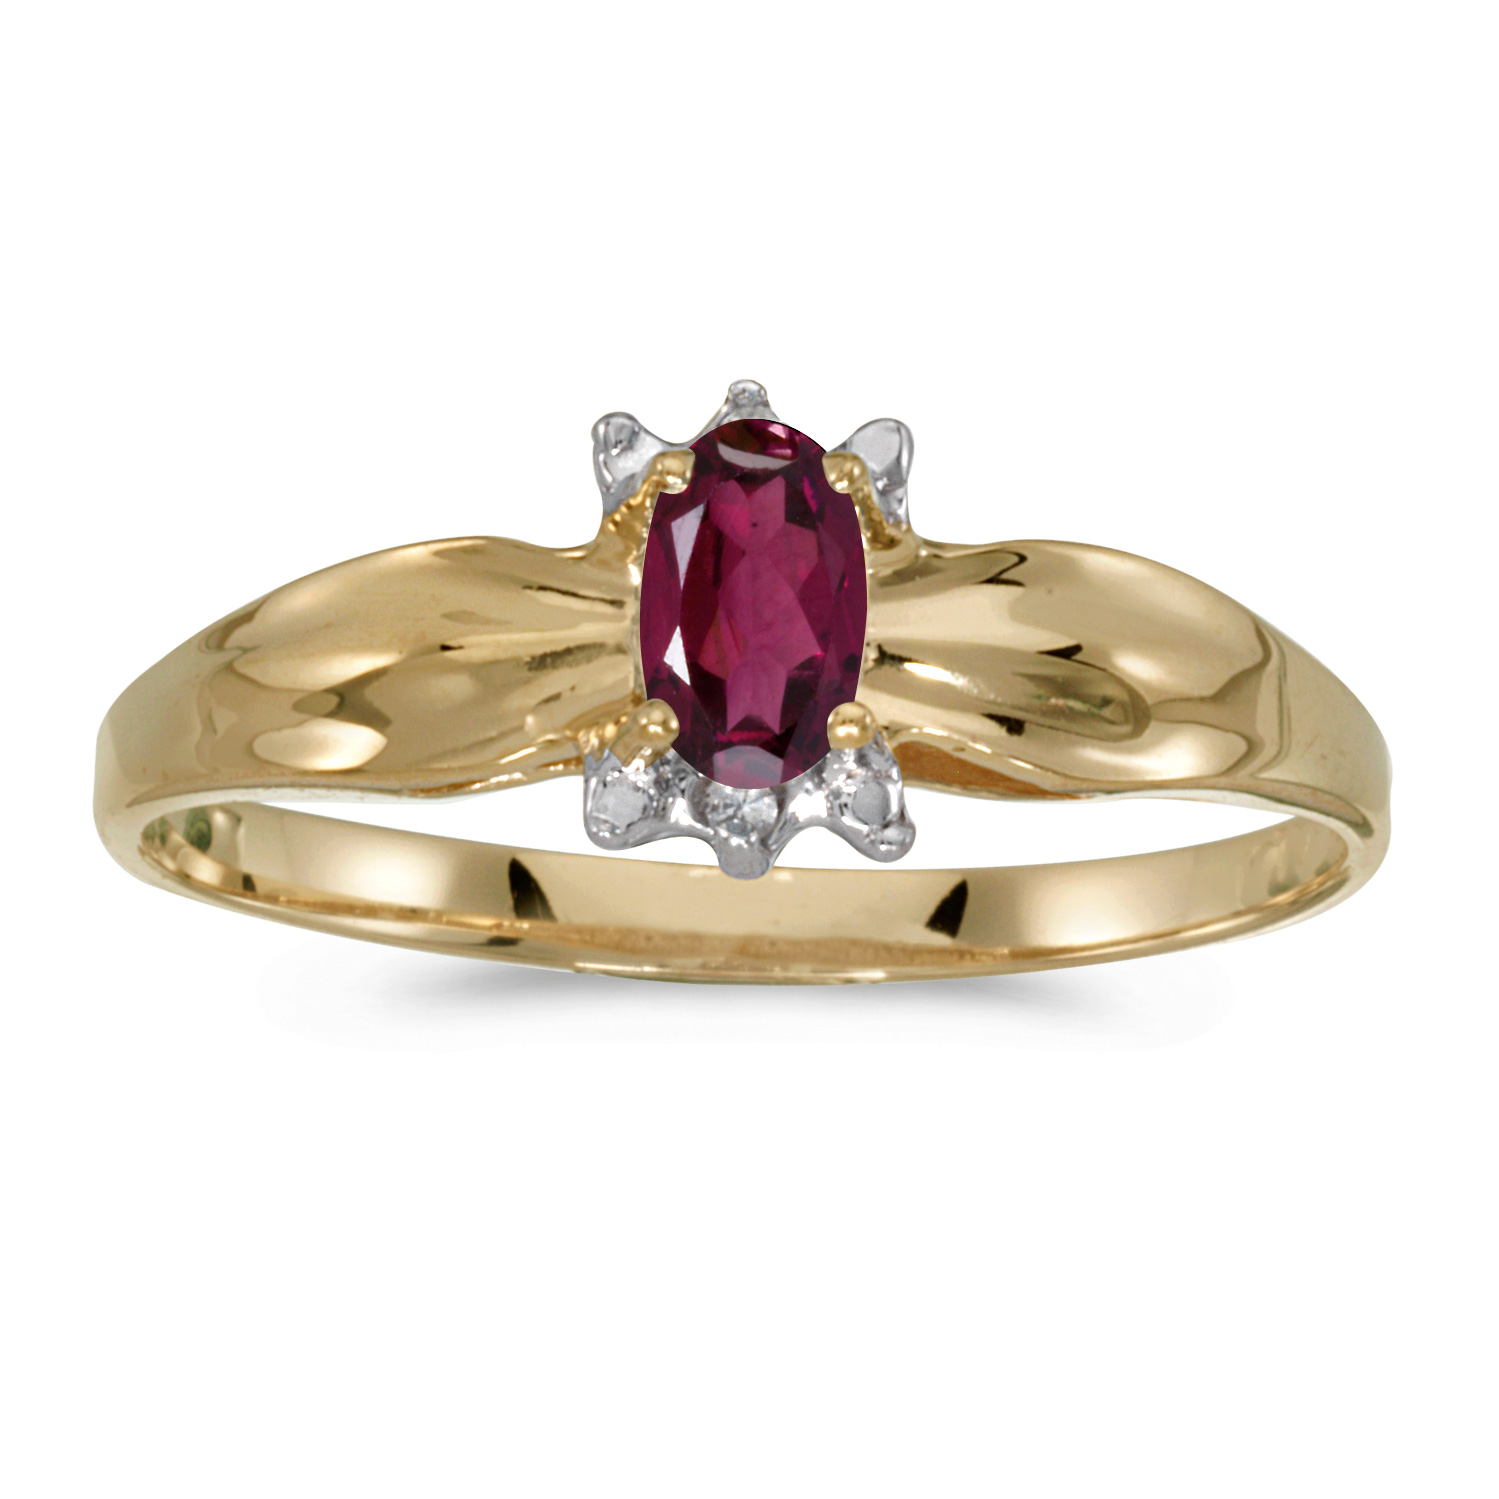 10k Yellow Gold Oval Rhodolite Garnet And Diamond Ring by